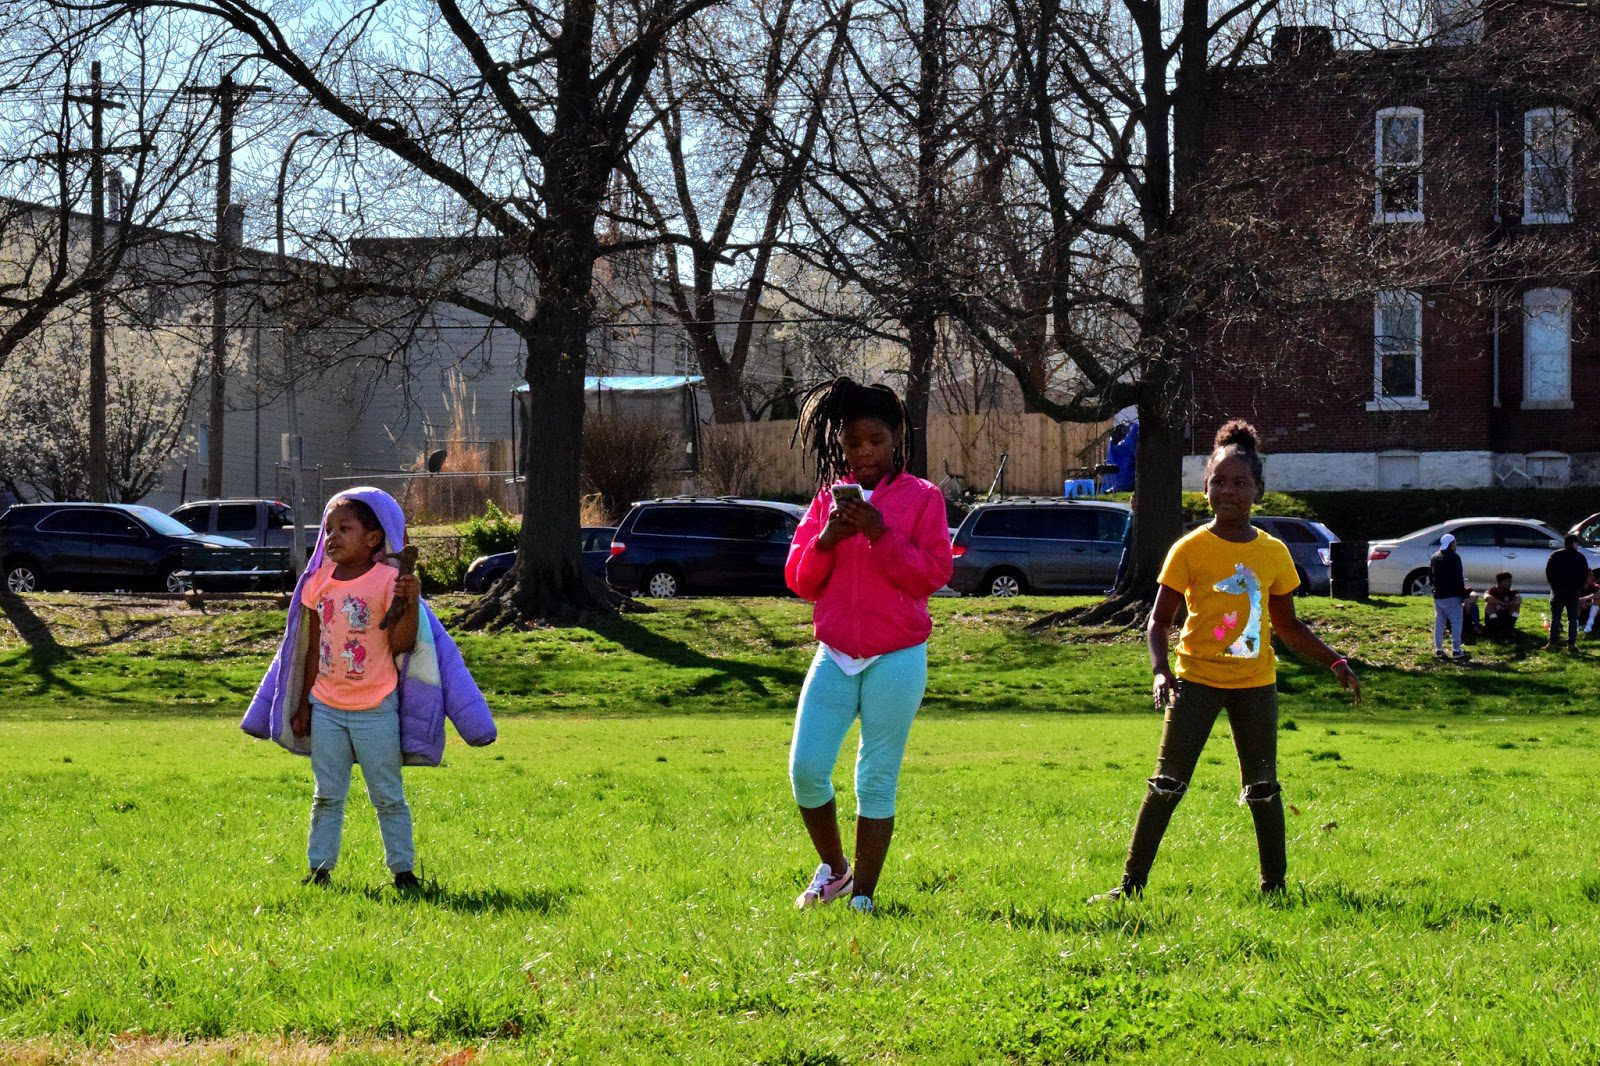 Children at Marquette Park in Dutchtown, St. Louis, MO.